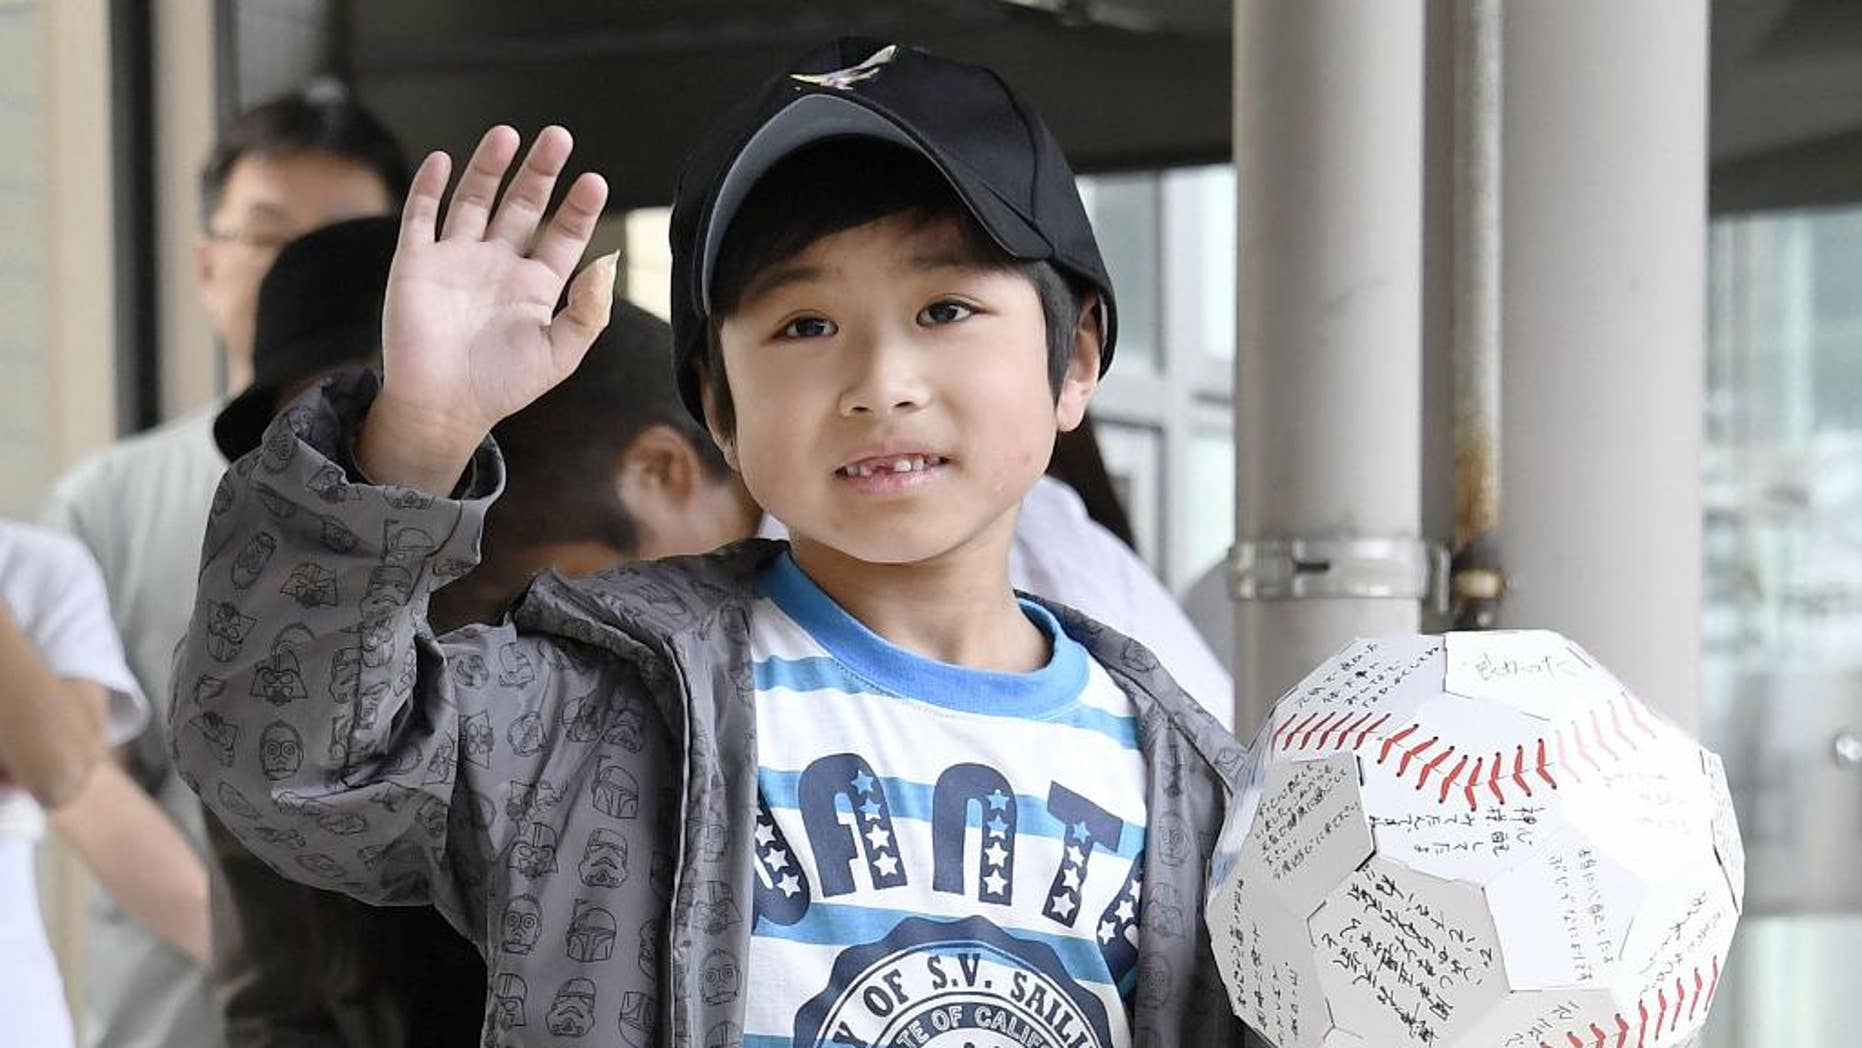 FILE - In this June 7, 2016 file photo, Yamato Tanooka, who survived almost a week in a forest after his parents left him at the side of a road,  waves as he leaves a hospital in Hakodate on the northern island of Hokkaido. The Japanese boy was released from a hospital this week, smiling and waving at a crowd cheering the happy ending. Public criticism of the father, who made 7-year-old Tanooka get out of the car to punish him for misbehavior, has faded, and police reportedly won't pursue charges. (Daisuke Suzuki/Kyodo News via AP, File) JAPAN OUT, MANDATORY CREDIT